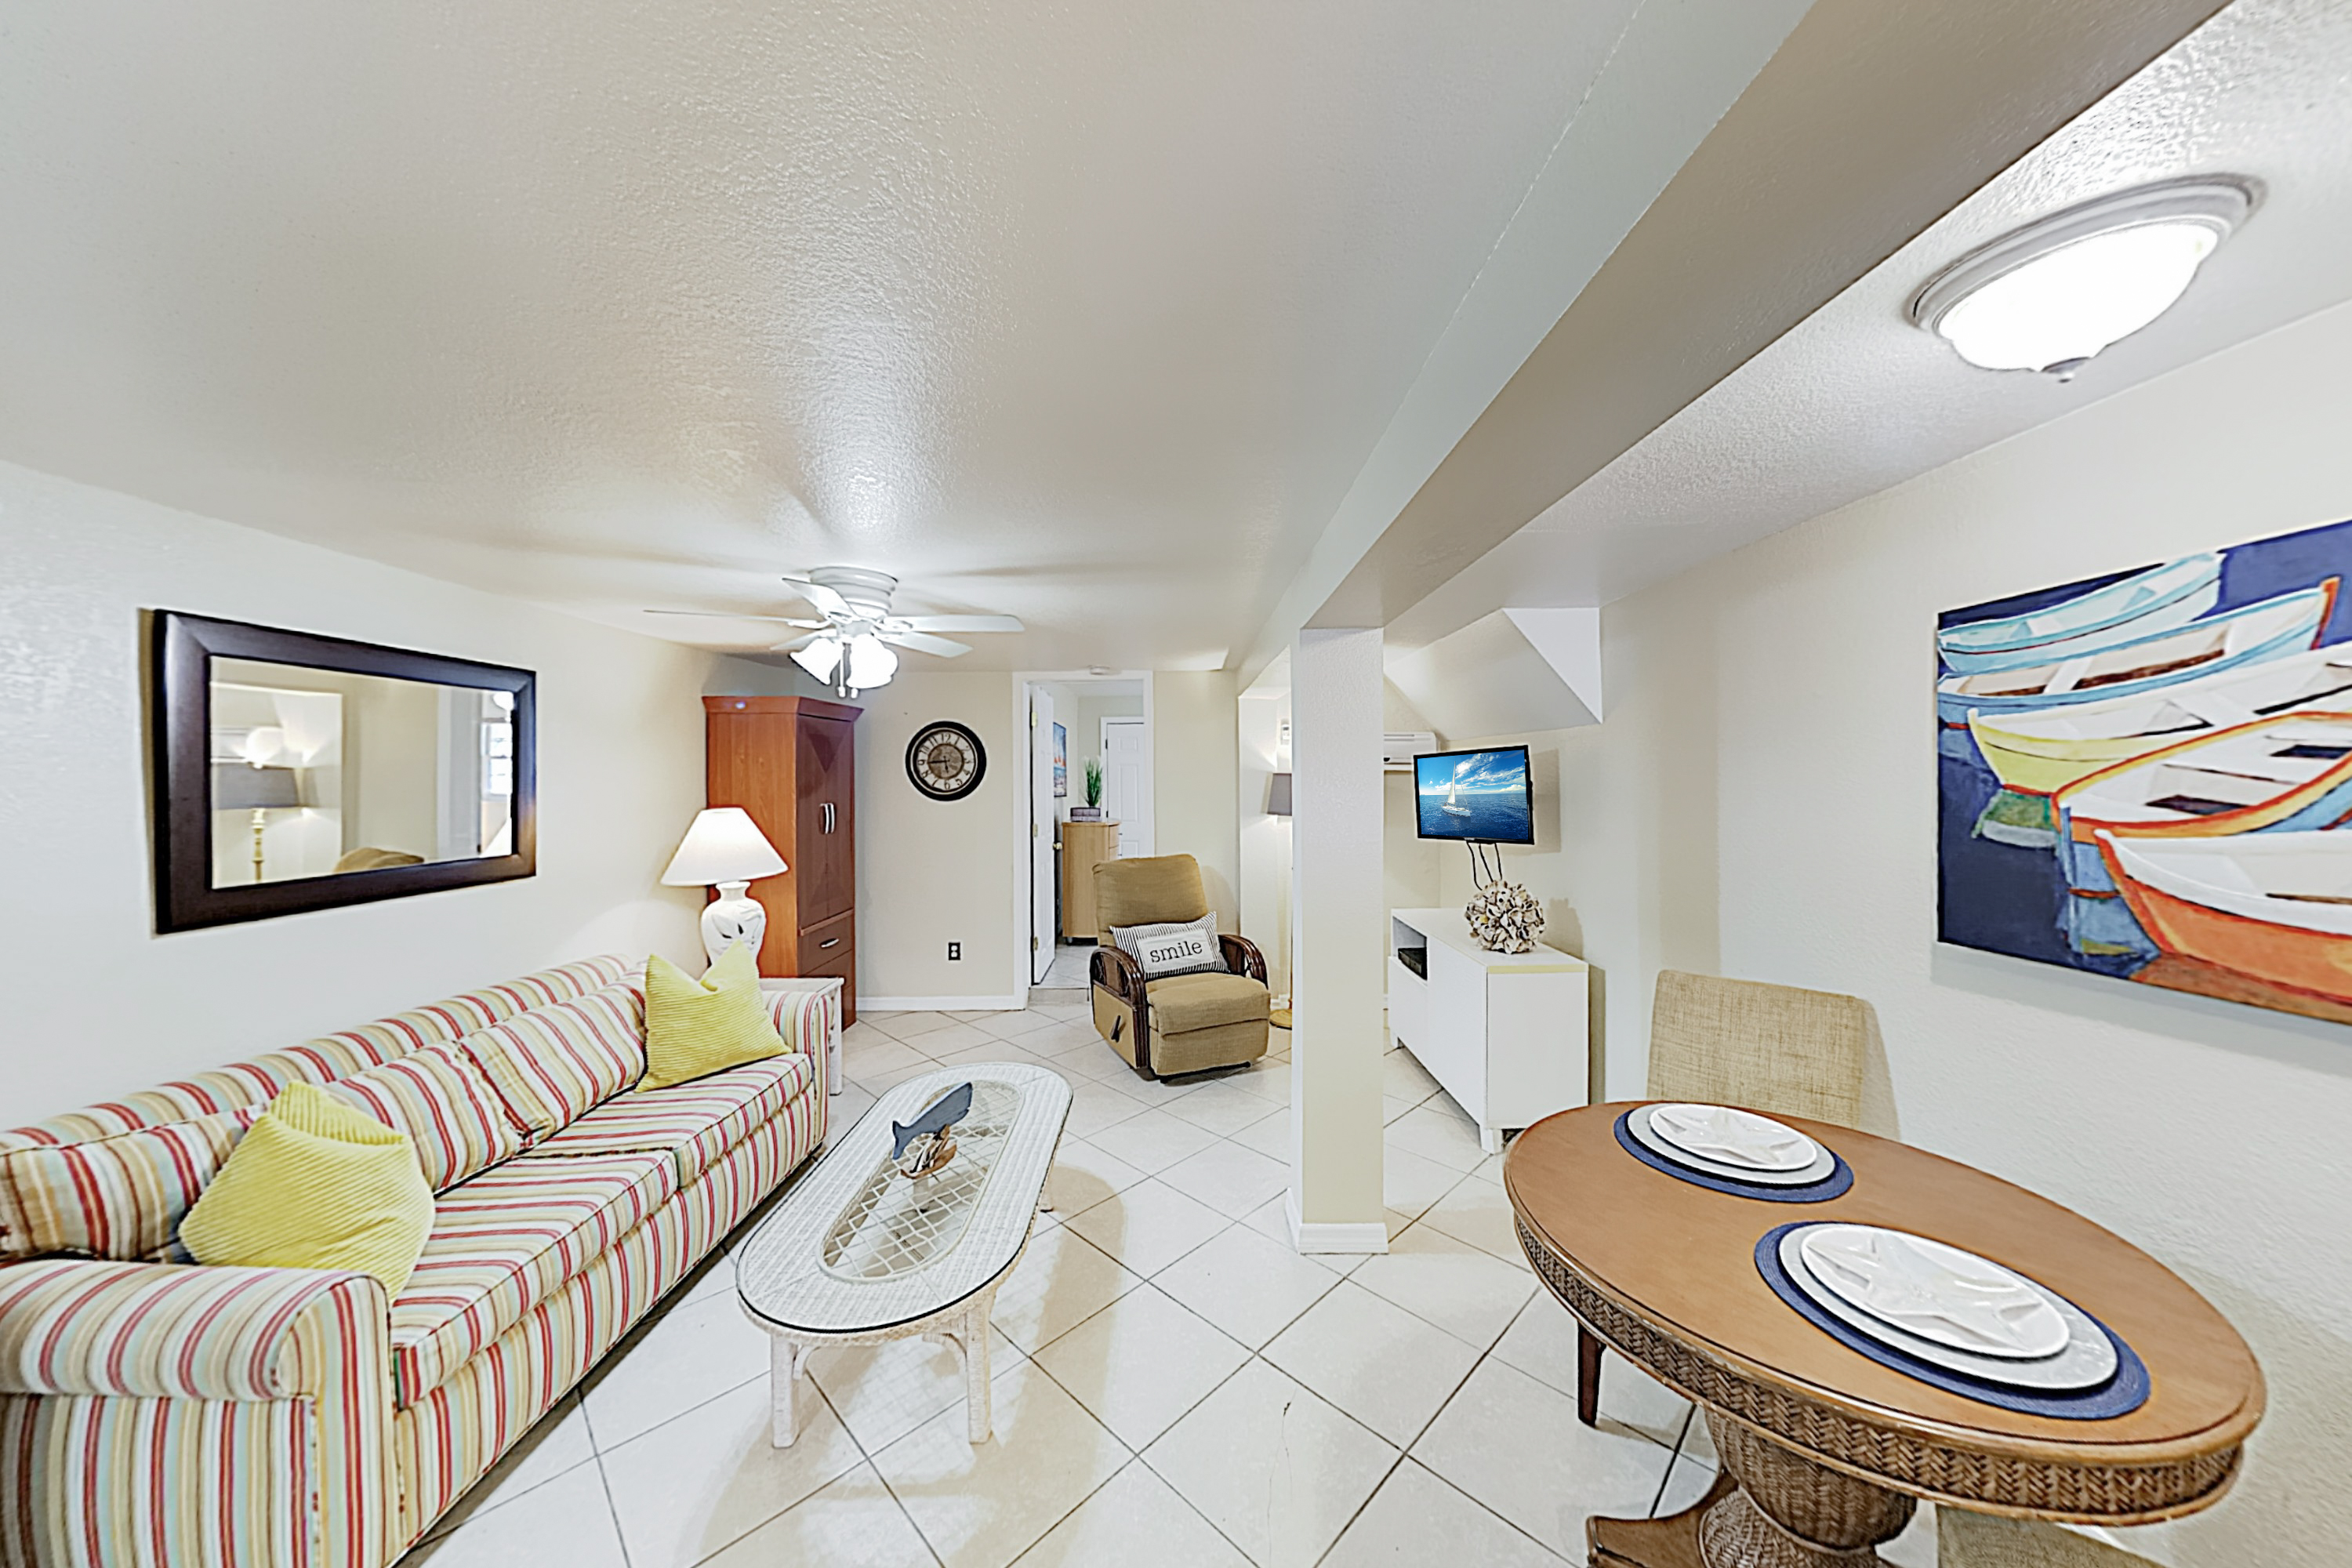 Maderia Beach FL Vacation Rental Welcome to Maderia